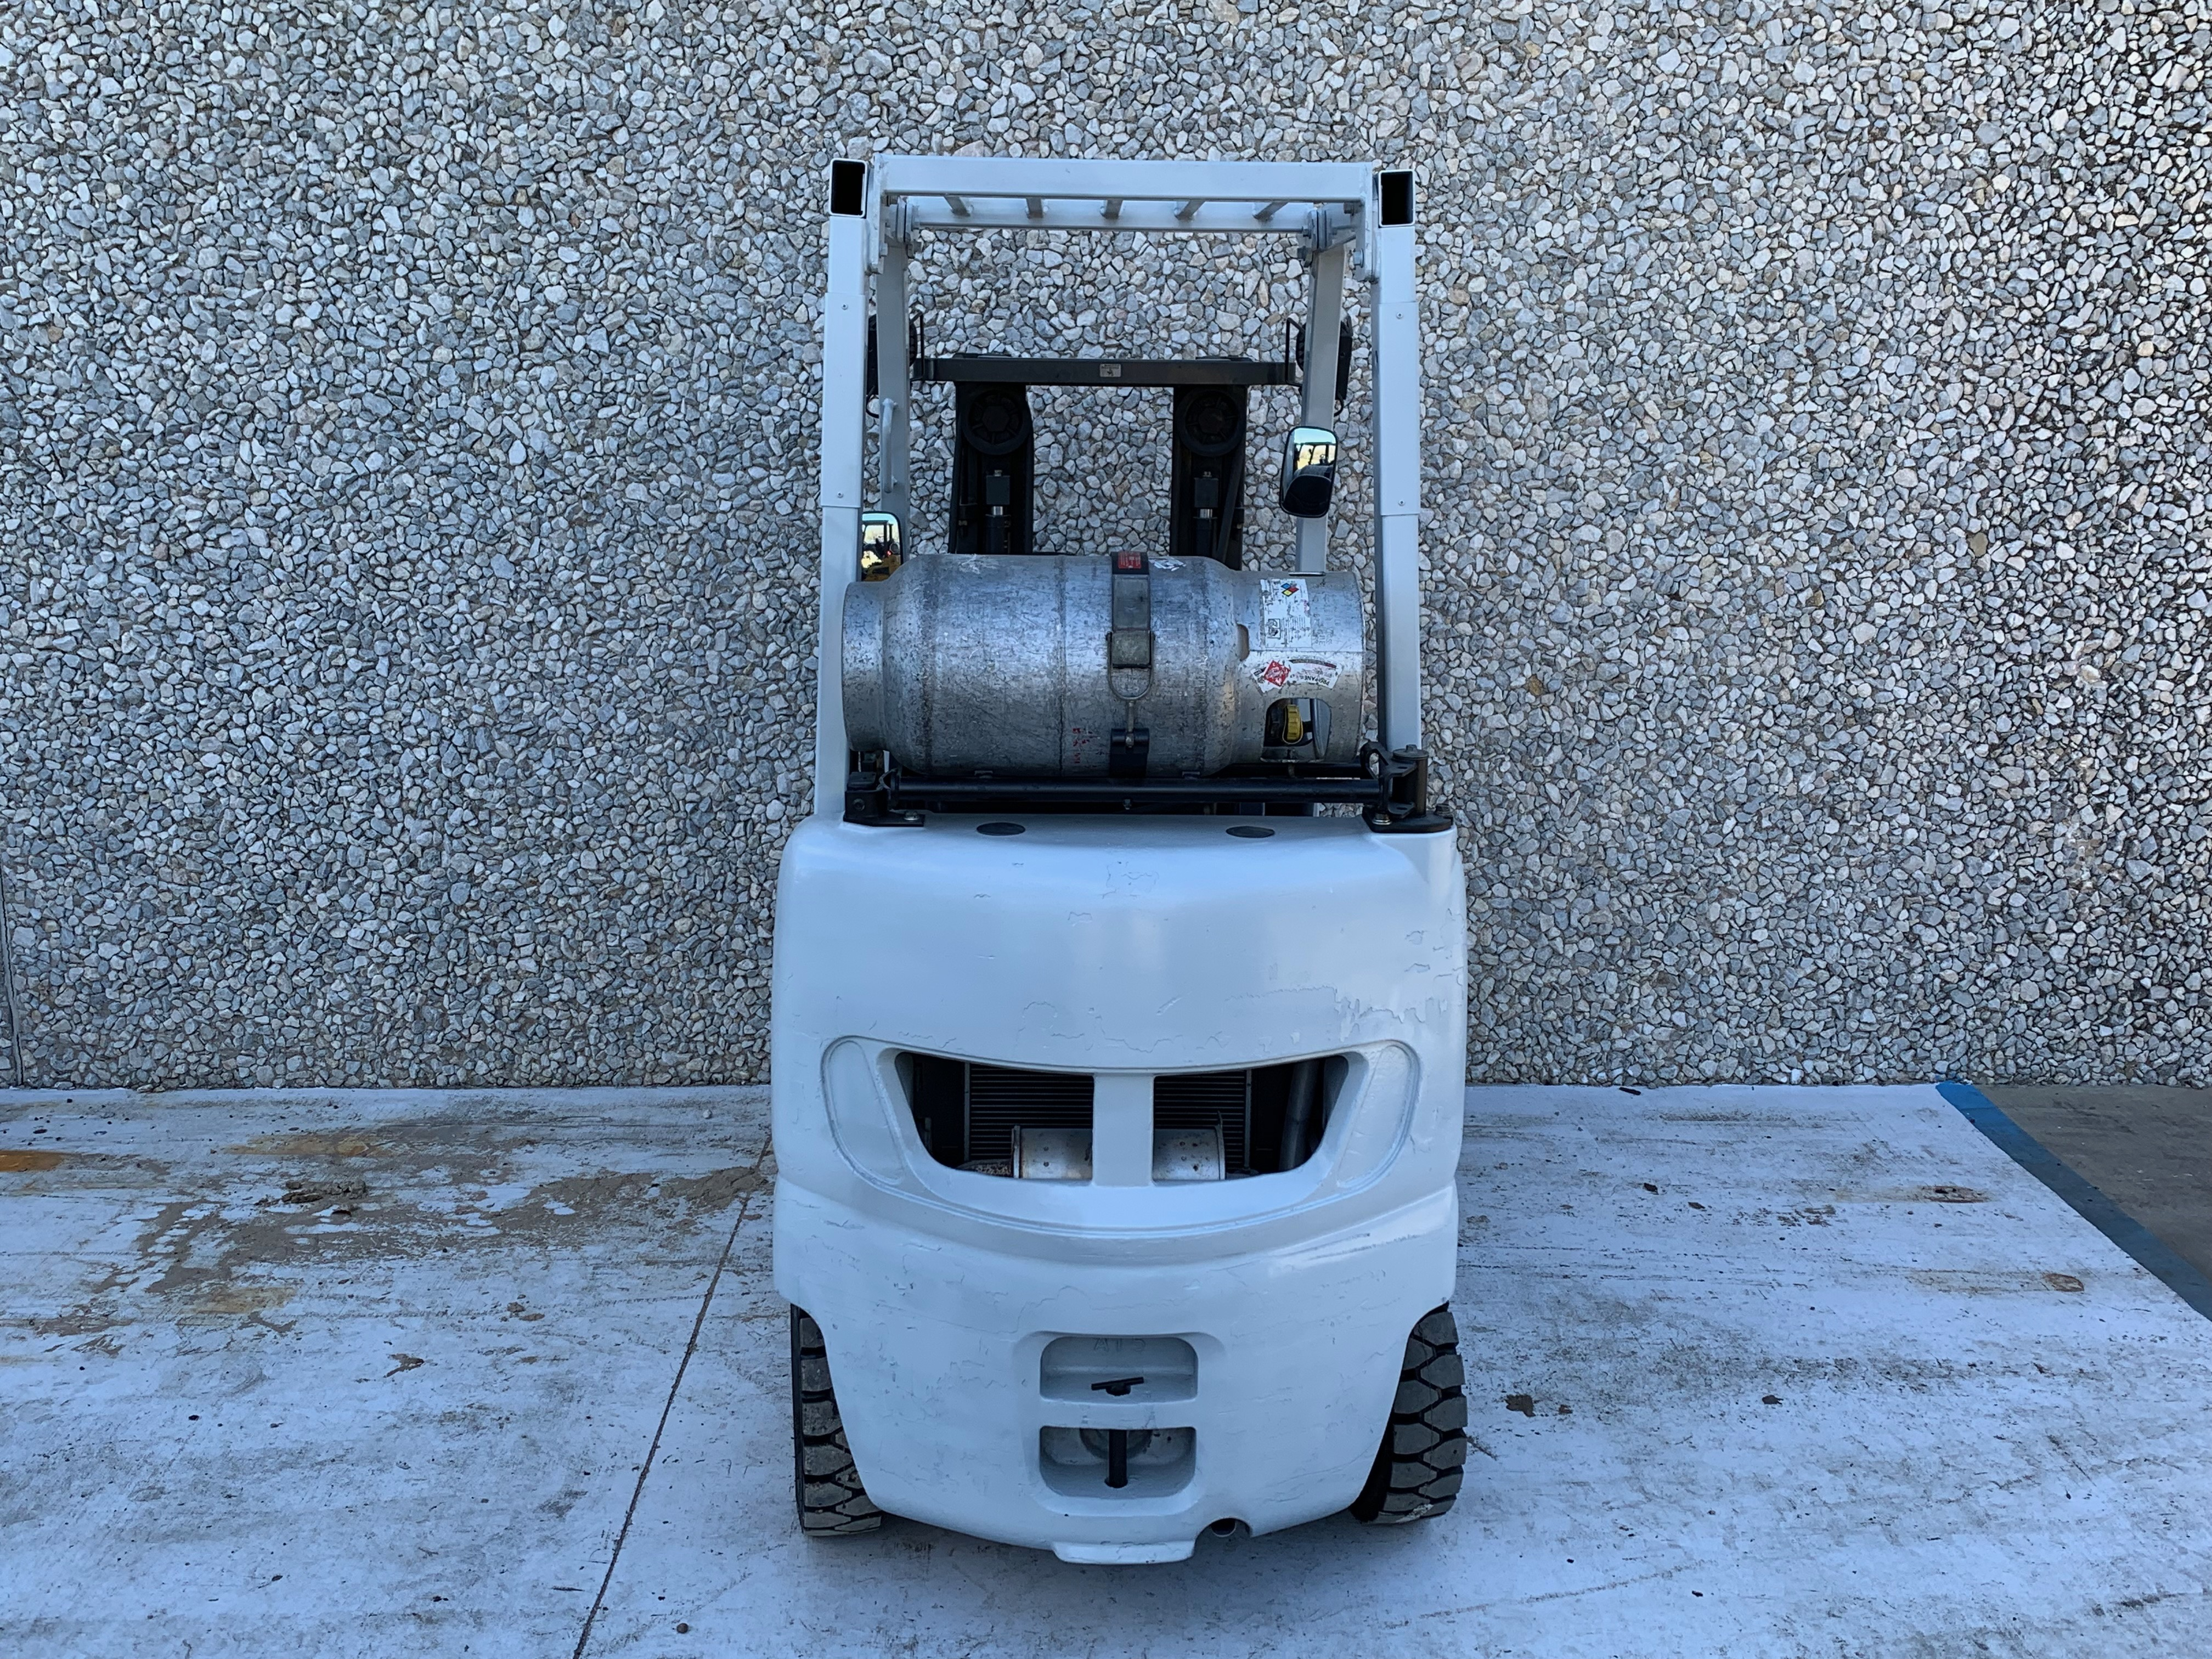 UniCarriers Nomad Forklift, Lift Truck